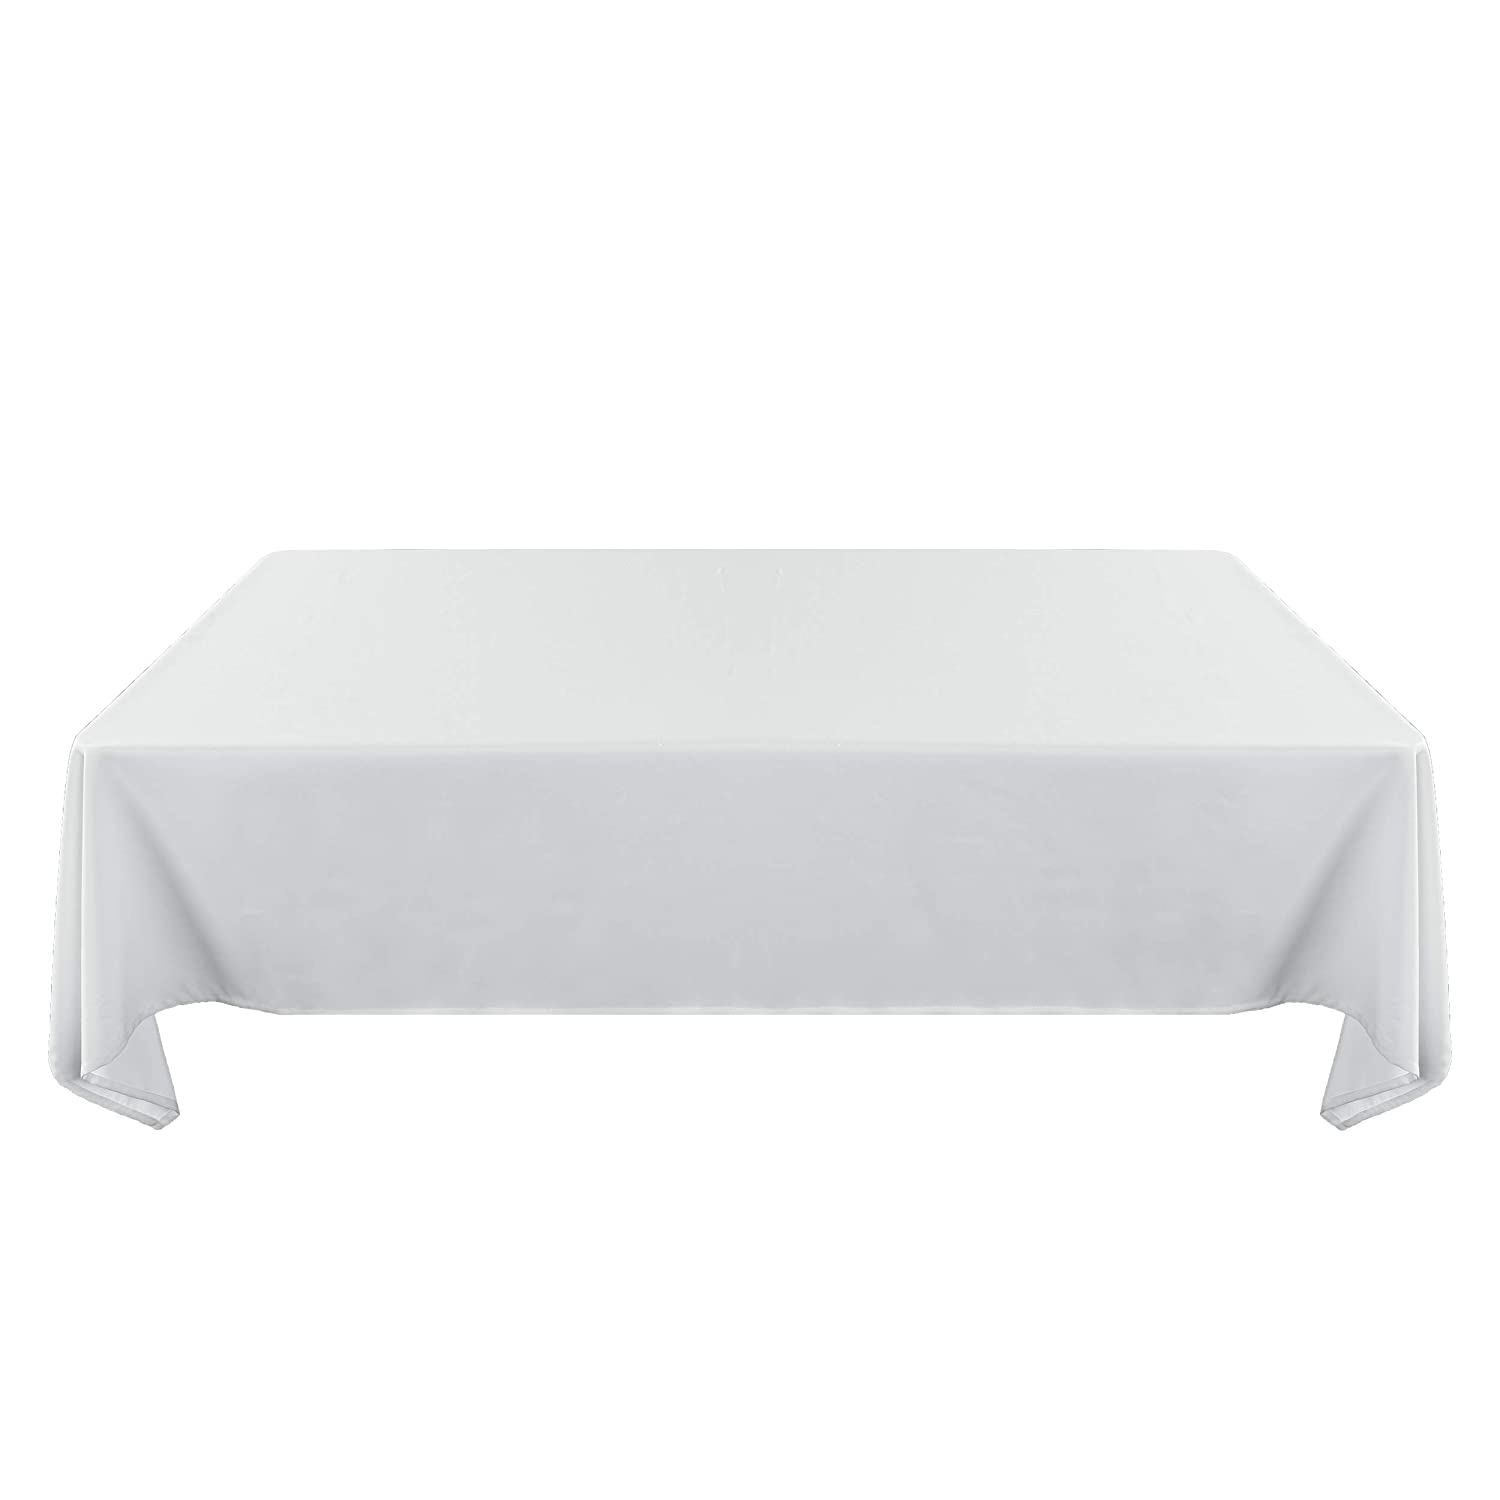 SUO AI TEXTILE Solid Oxford Oblong Spillproof Wrinkle Resistant Tablecloth for Dining 54 Inch 72 Table Cover White